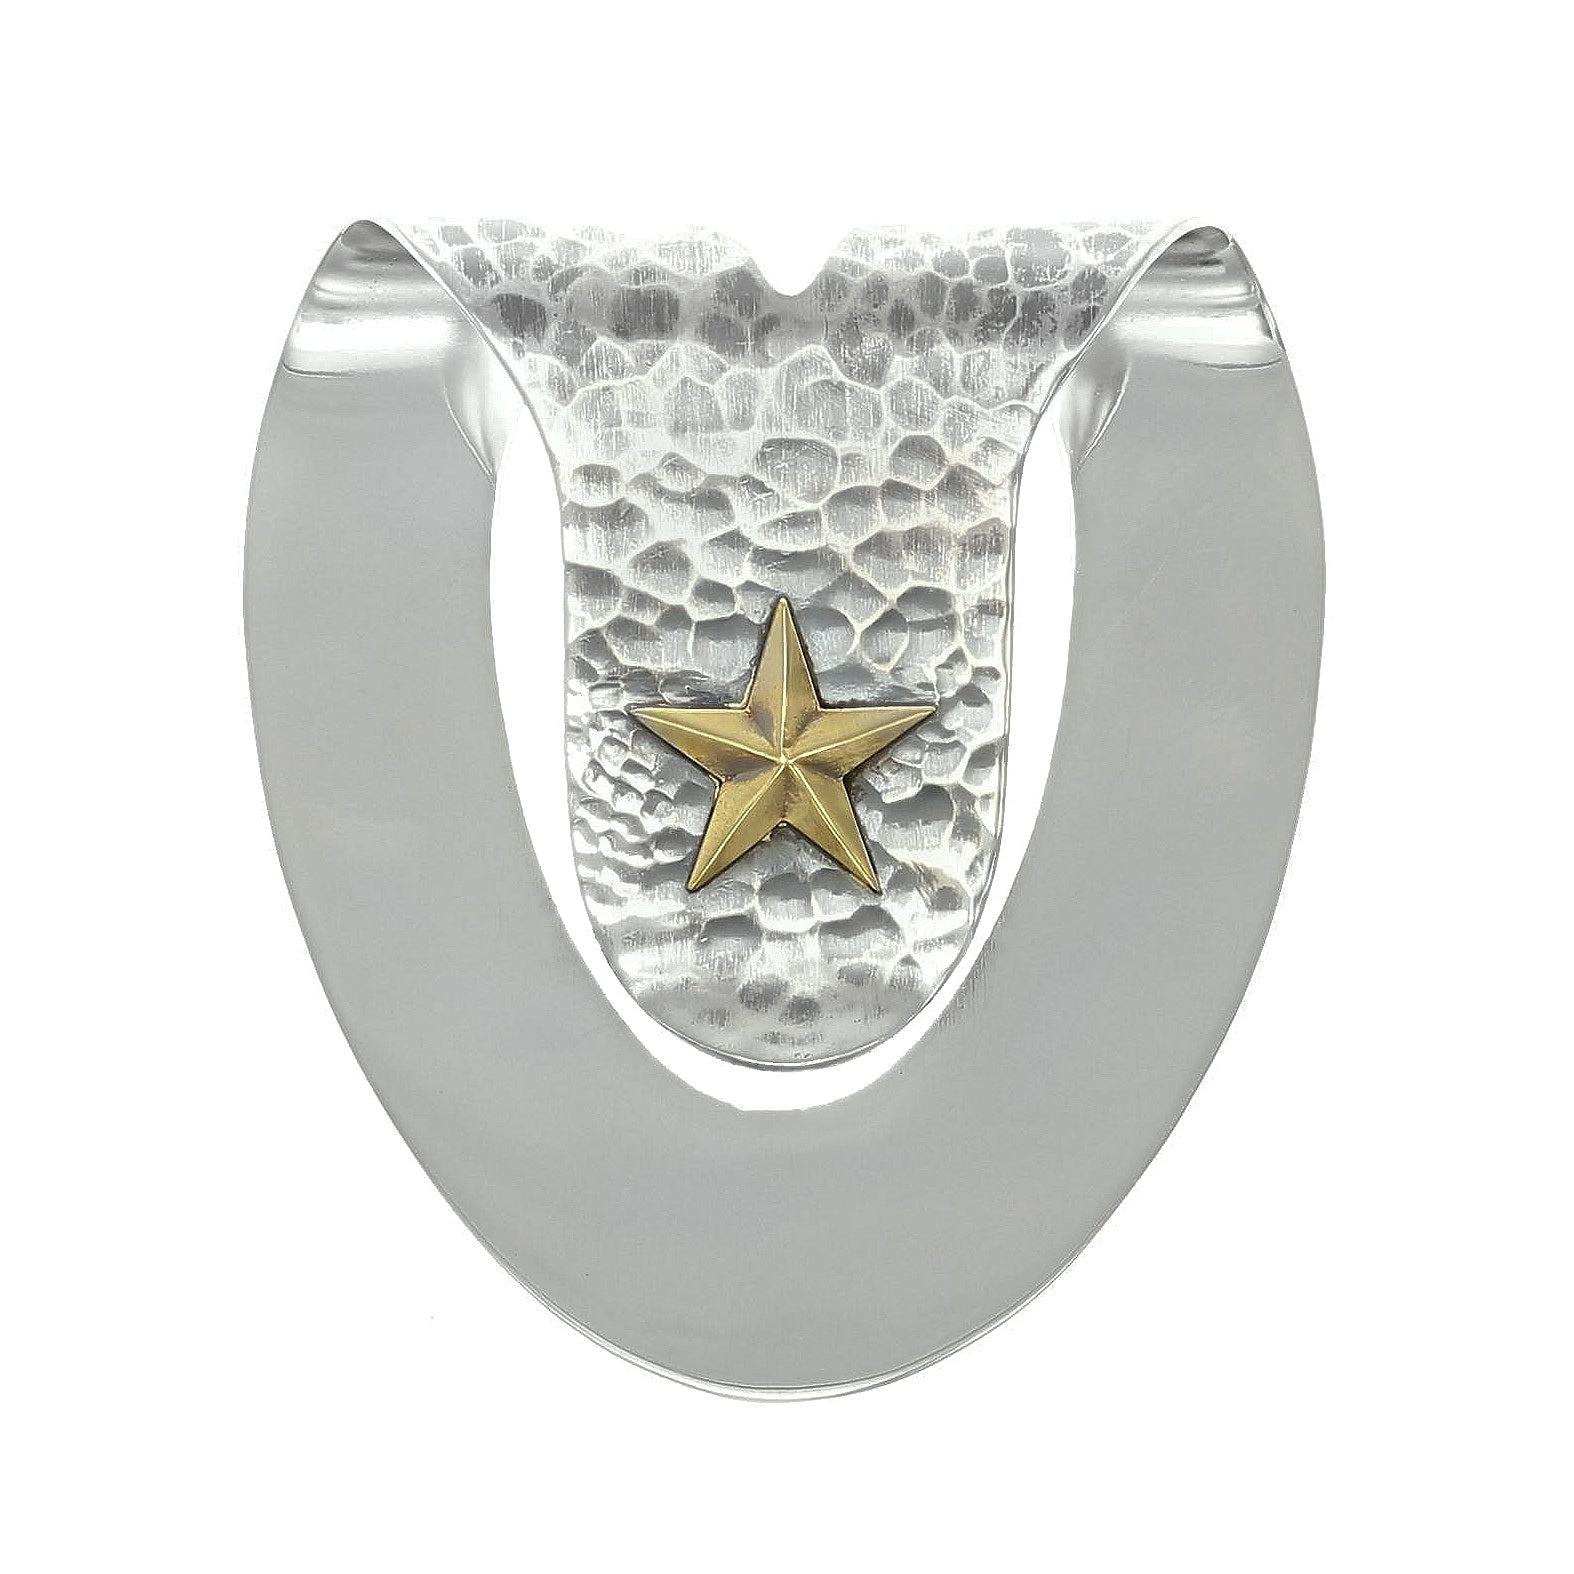 San Saba 1404 Gold Star Money Clip